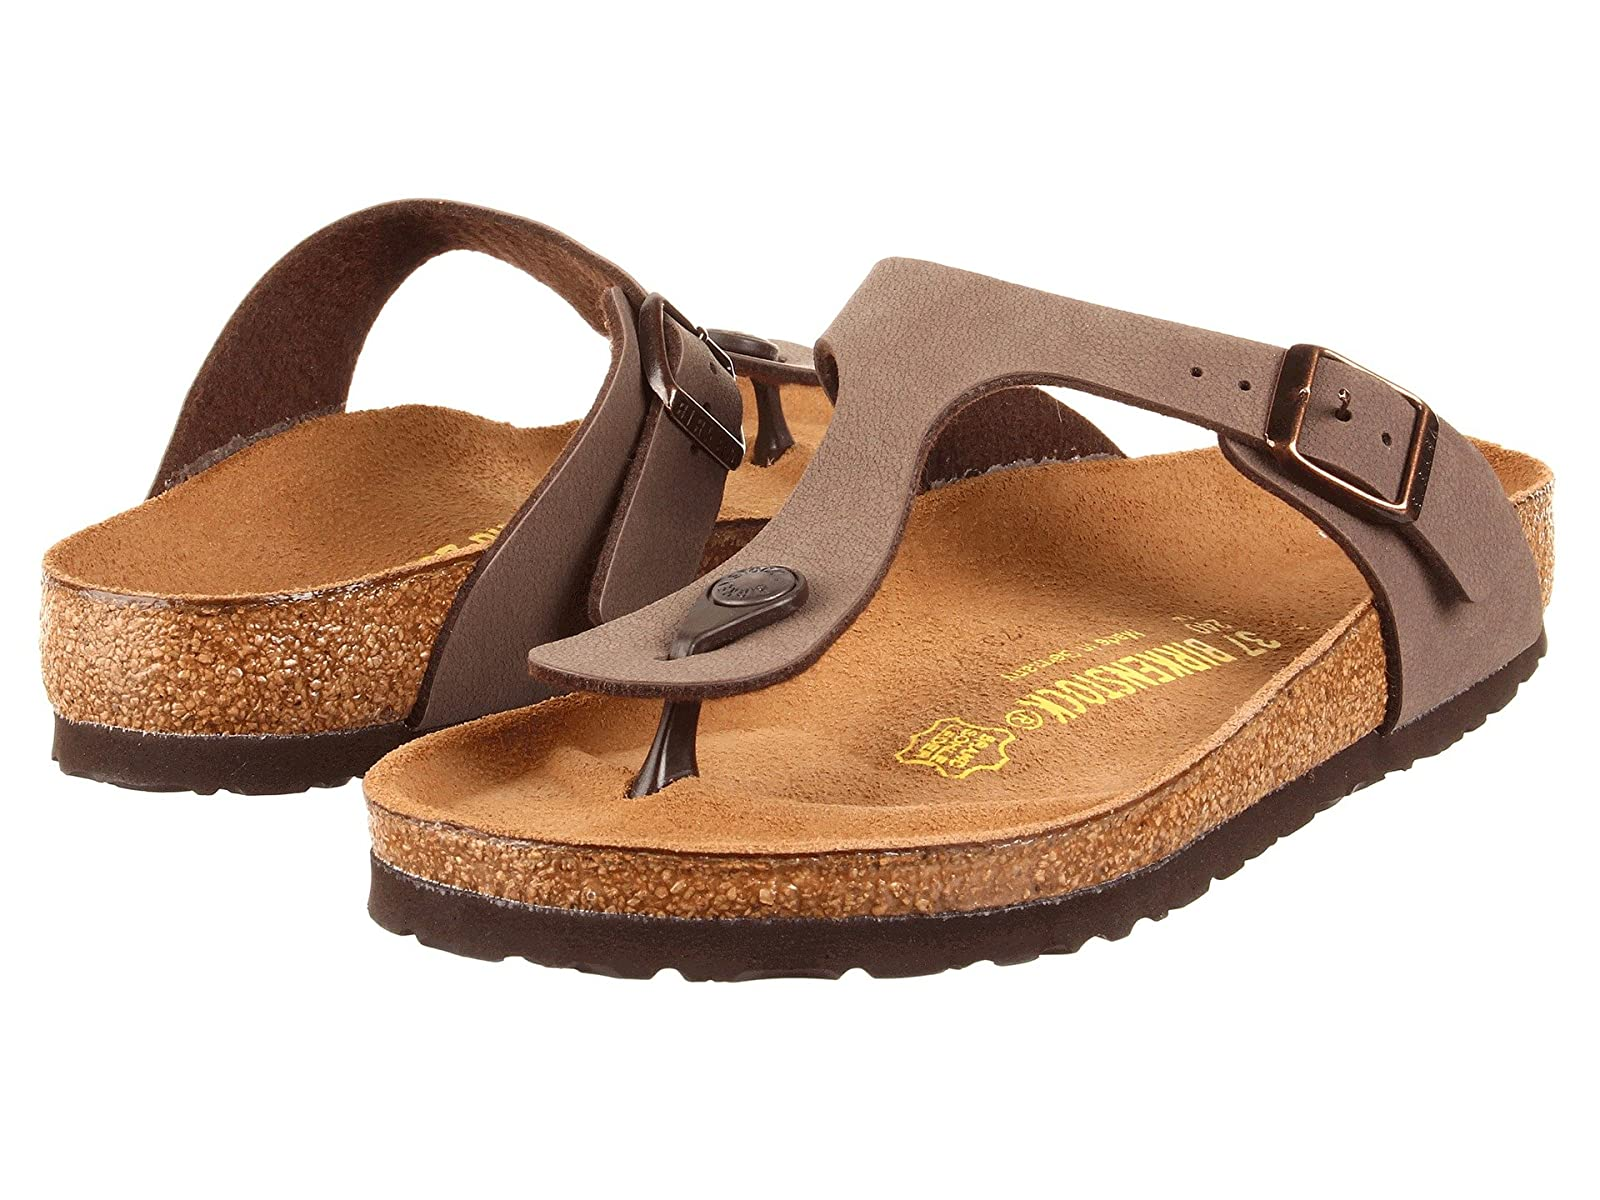 Birkenstock Gizeh Birkibuc™Comfortable and distinctive shoes